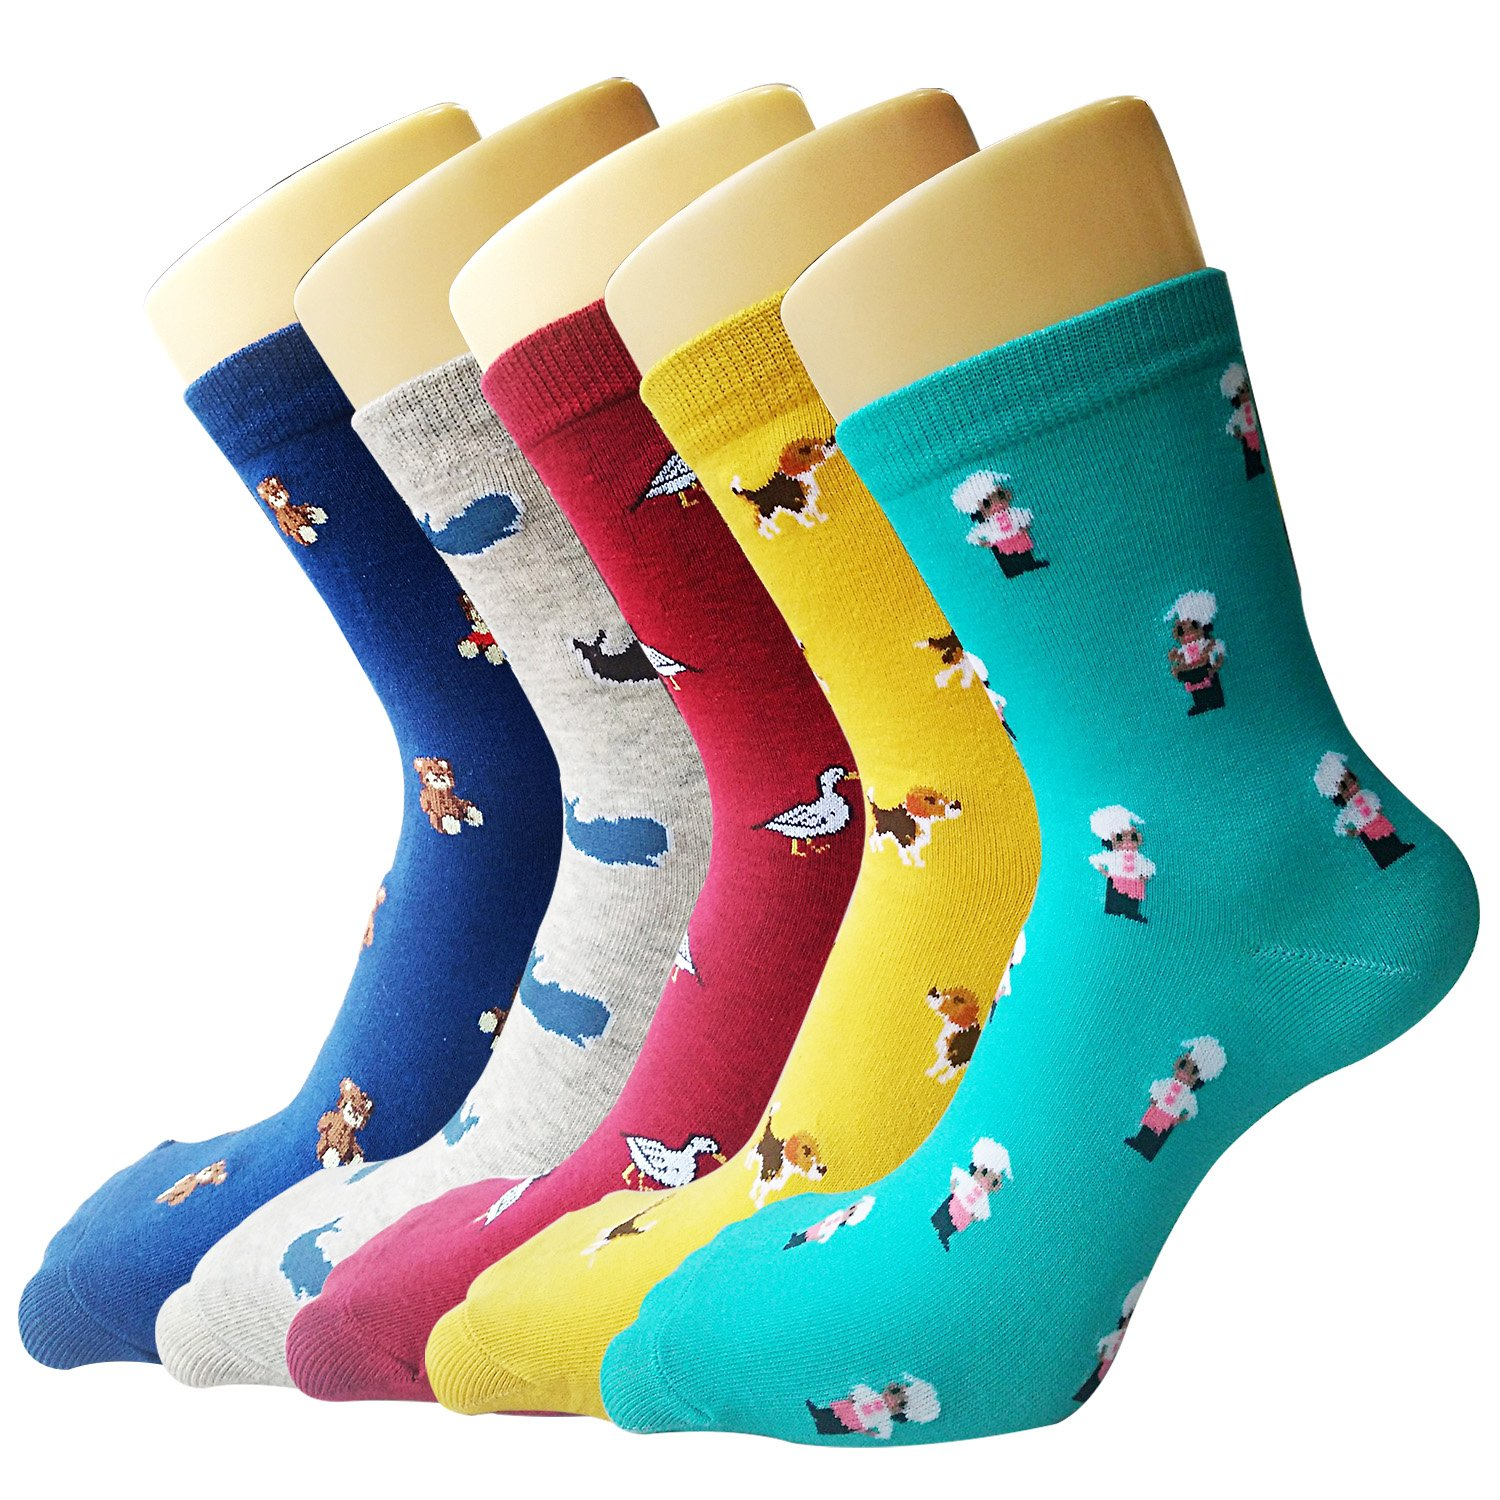 YSense 5 Pairs Womens Cute Funny Socks Casual Cotton Crew Animal Socks JANPS1